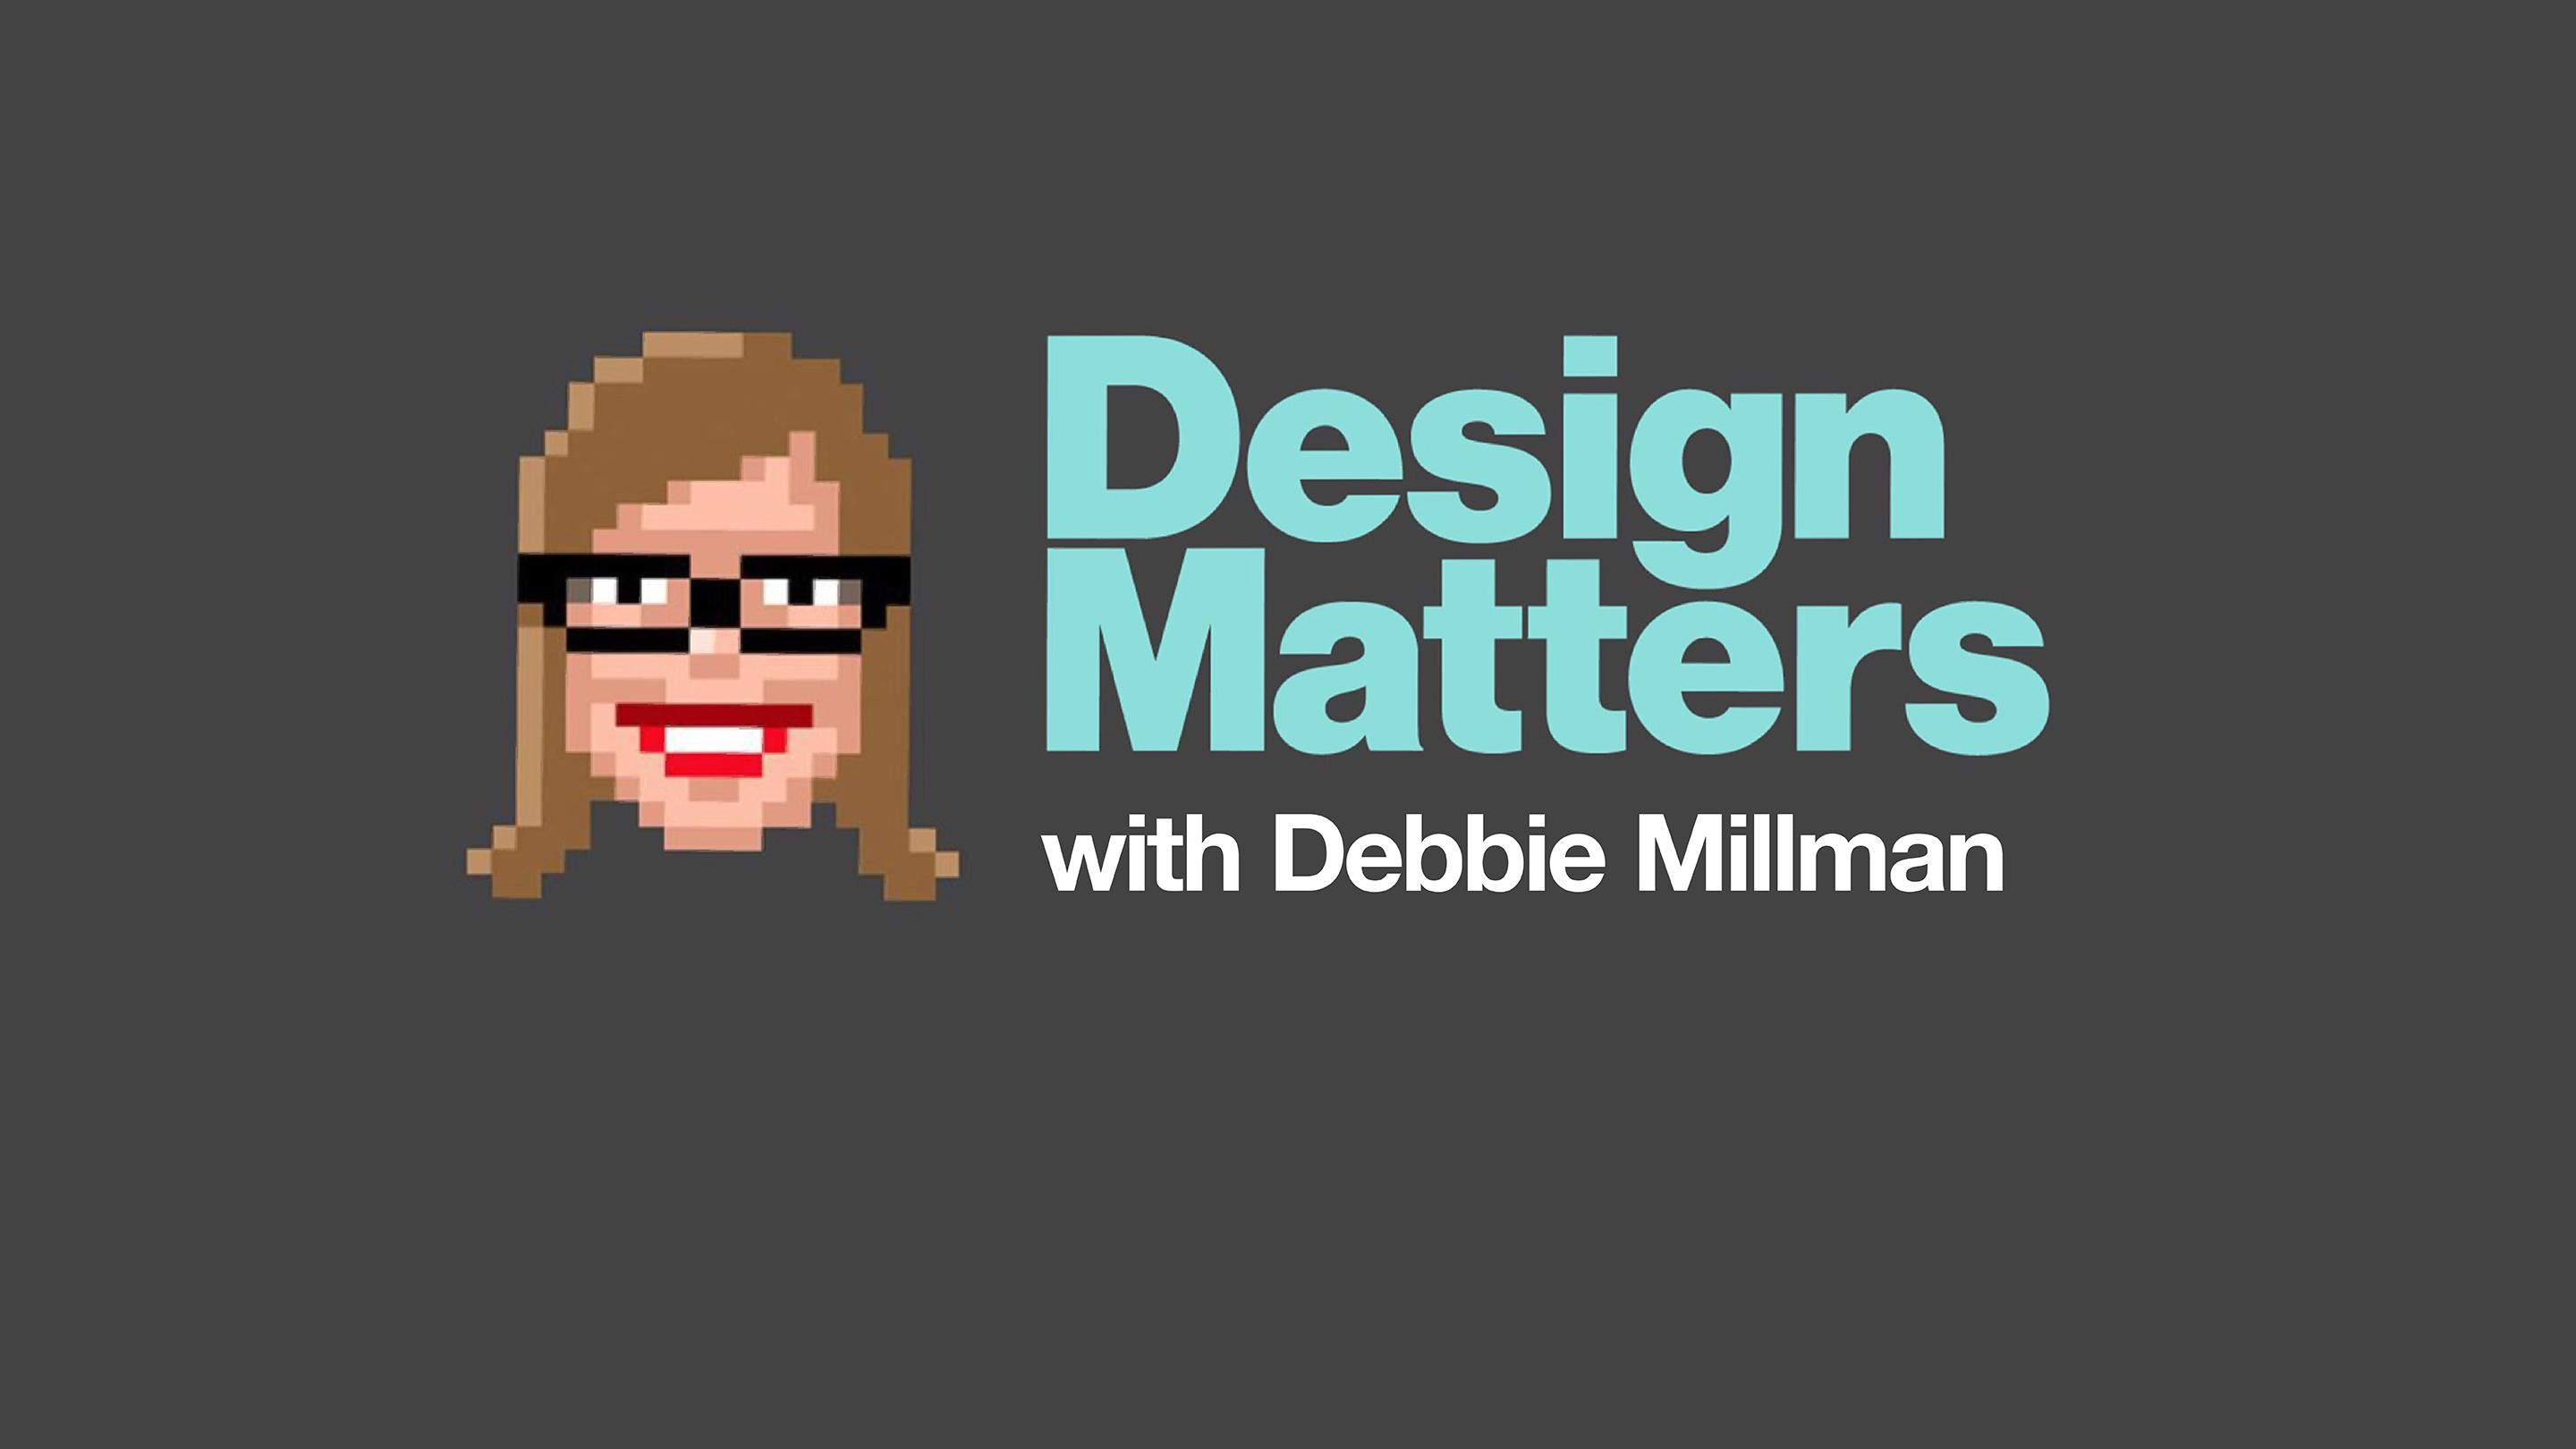 Cheryl Strayed | Design Matters with Debbie Millman